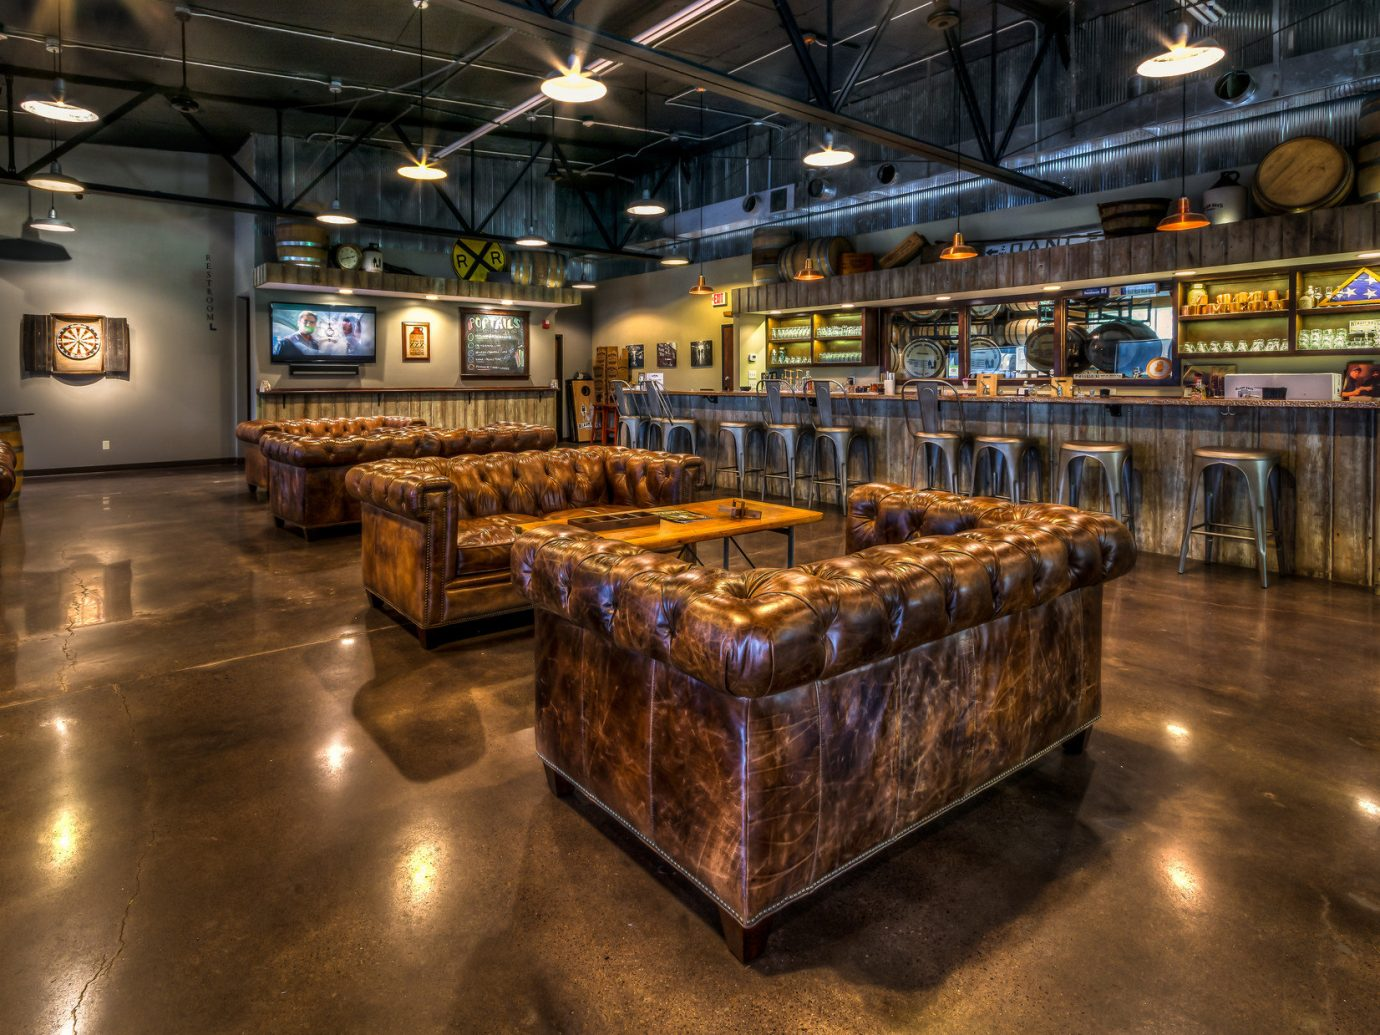 ambient lighting artistic artsy Bar bar seating distillery Hip industrial interior trendy Trip Ideas Weekend Getaways indoor floor ceiling building Lobby factory interior design retail stall tourist attraction